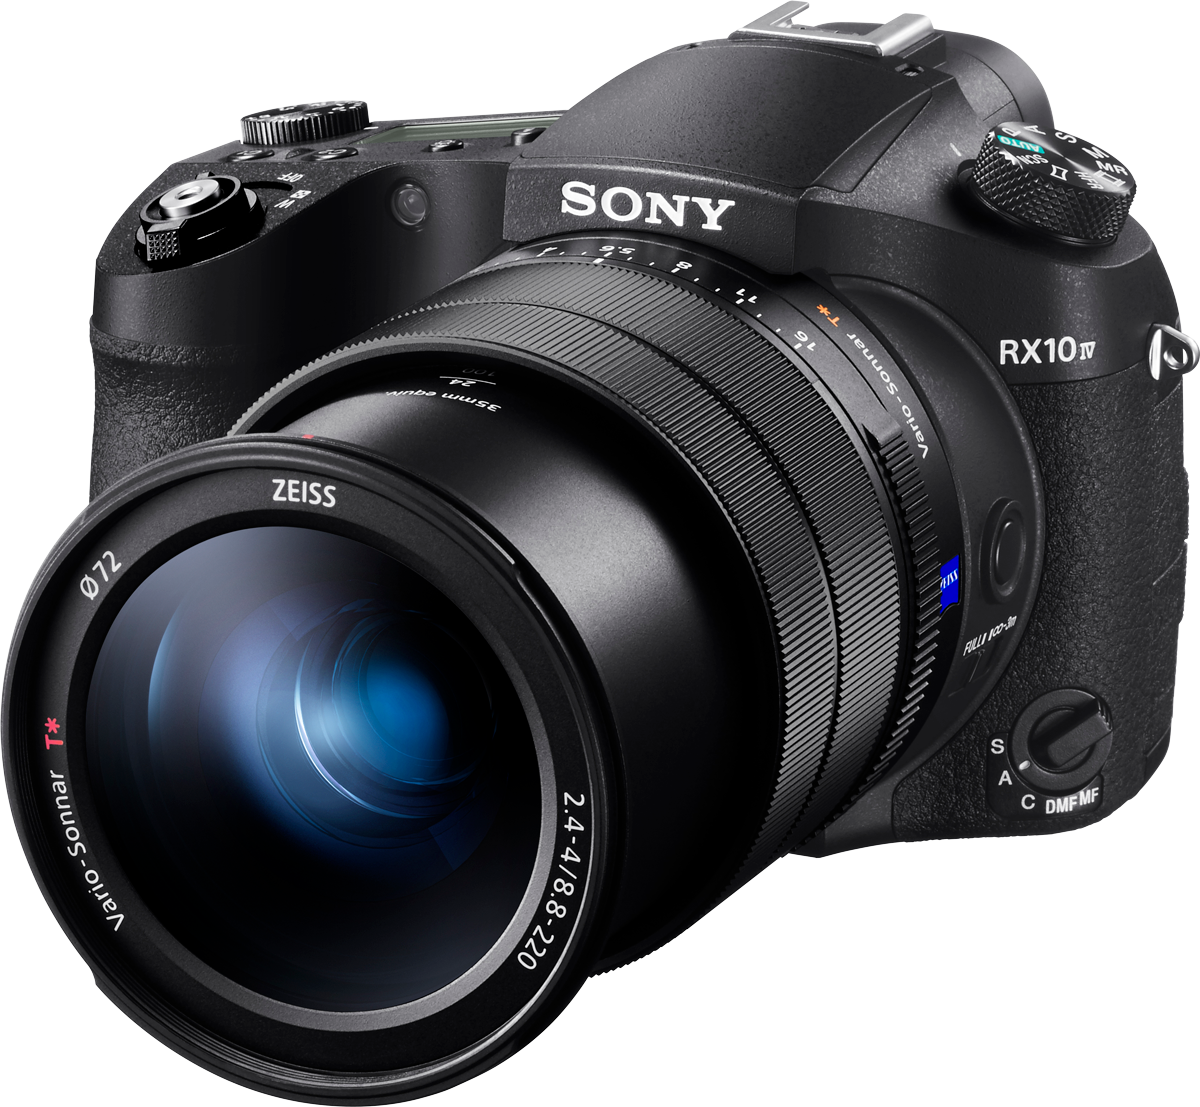 Sony Cyber-shot RX10 IV review: Digital Photography Review